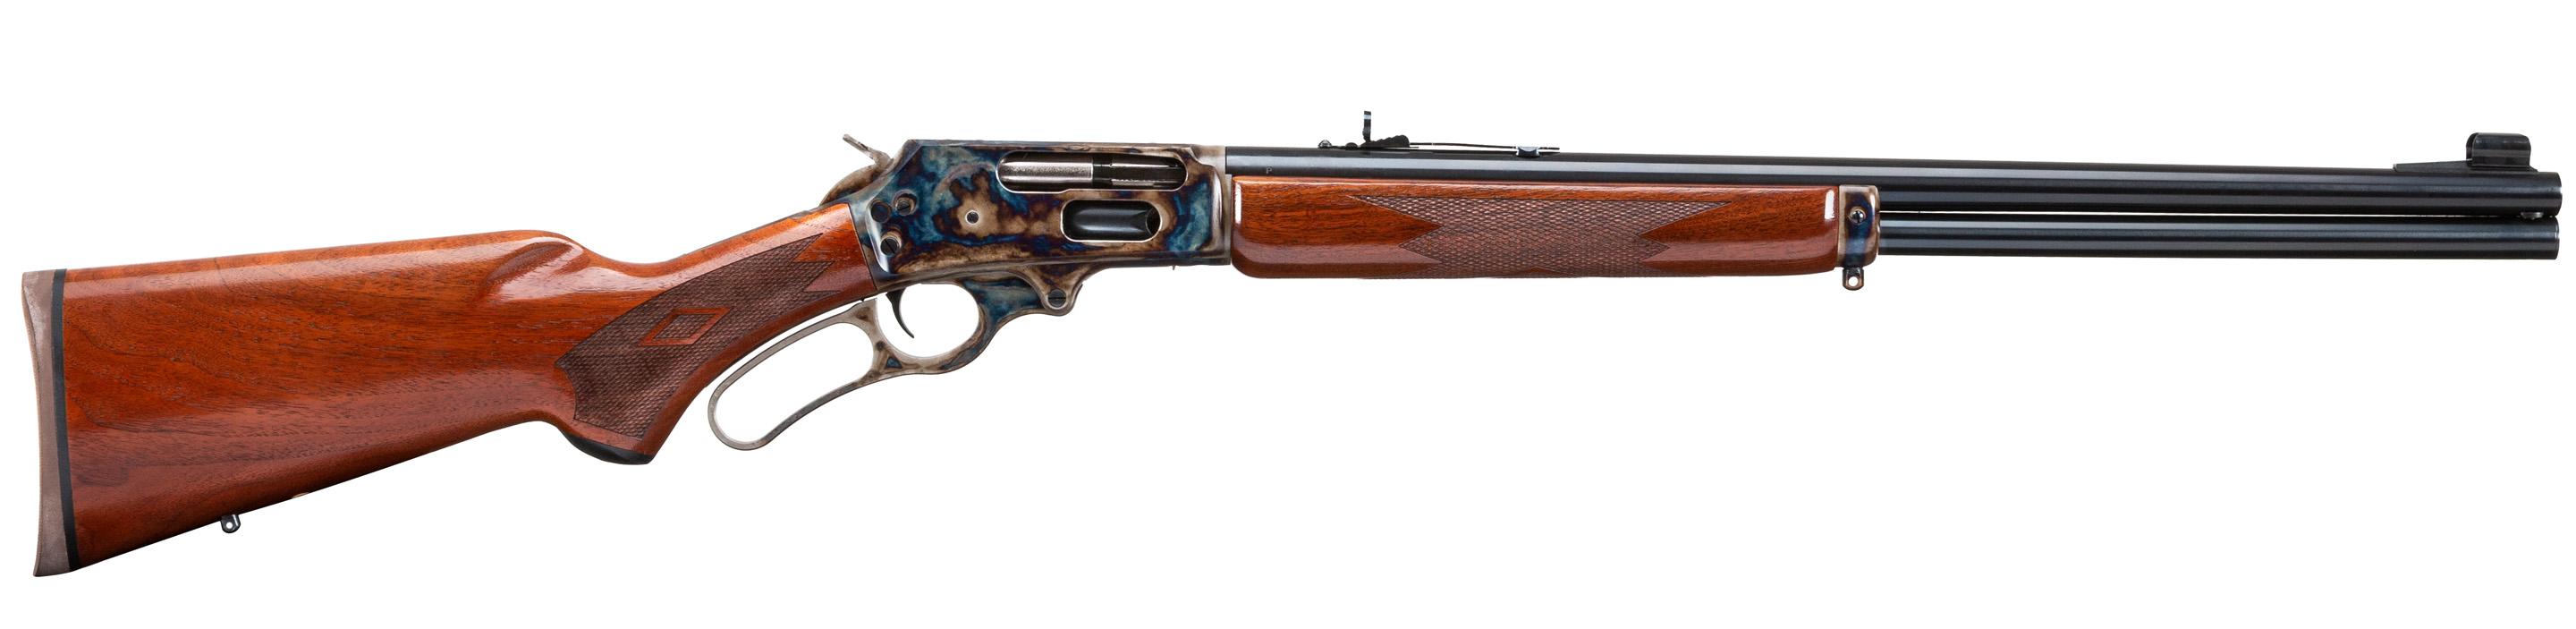 Turnbull Marlin 1895 with Full Length Mag Tube option